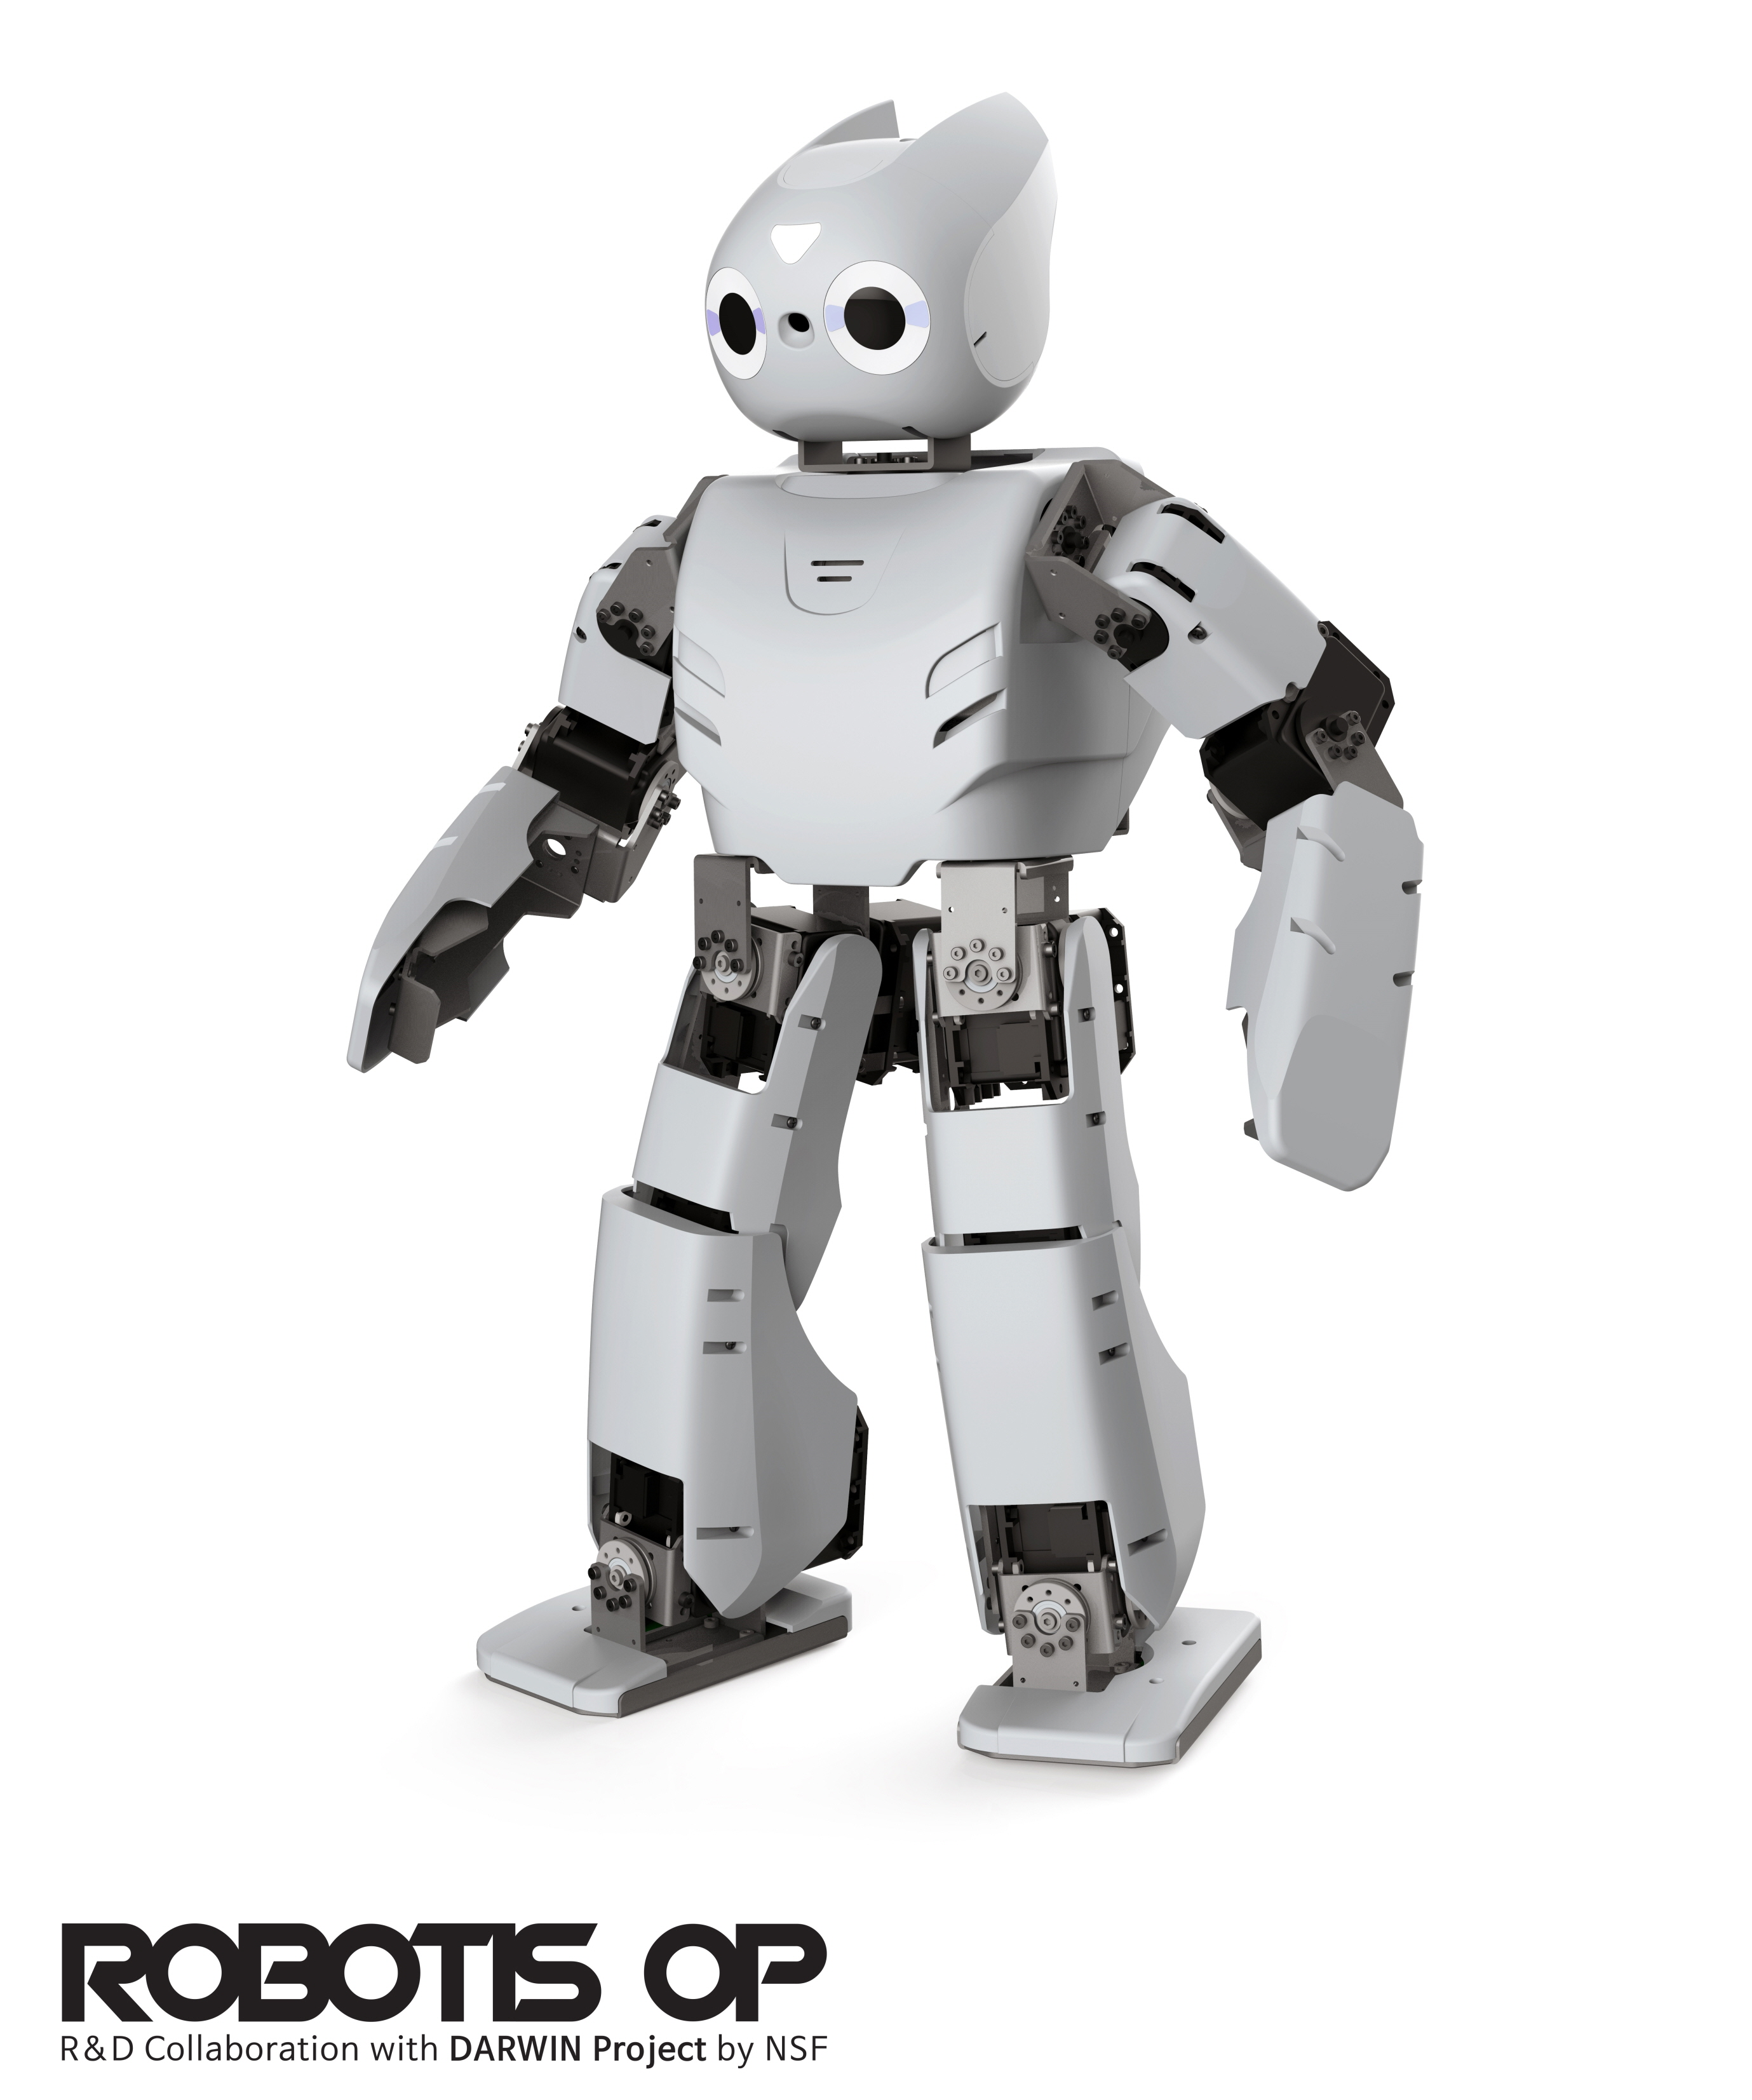 LG EXPANDS INVESTMENTS IN ROBOT INNOVATORS With Robots Playing a Key